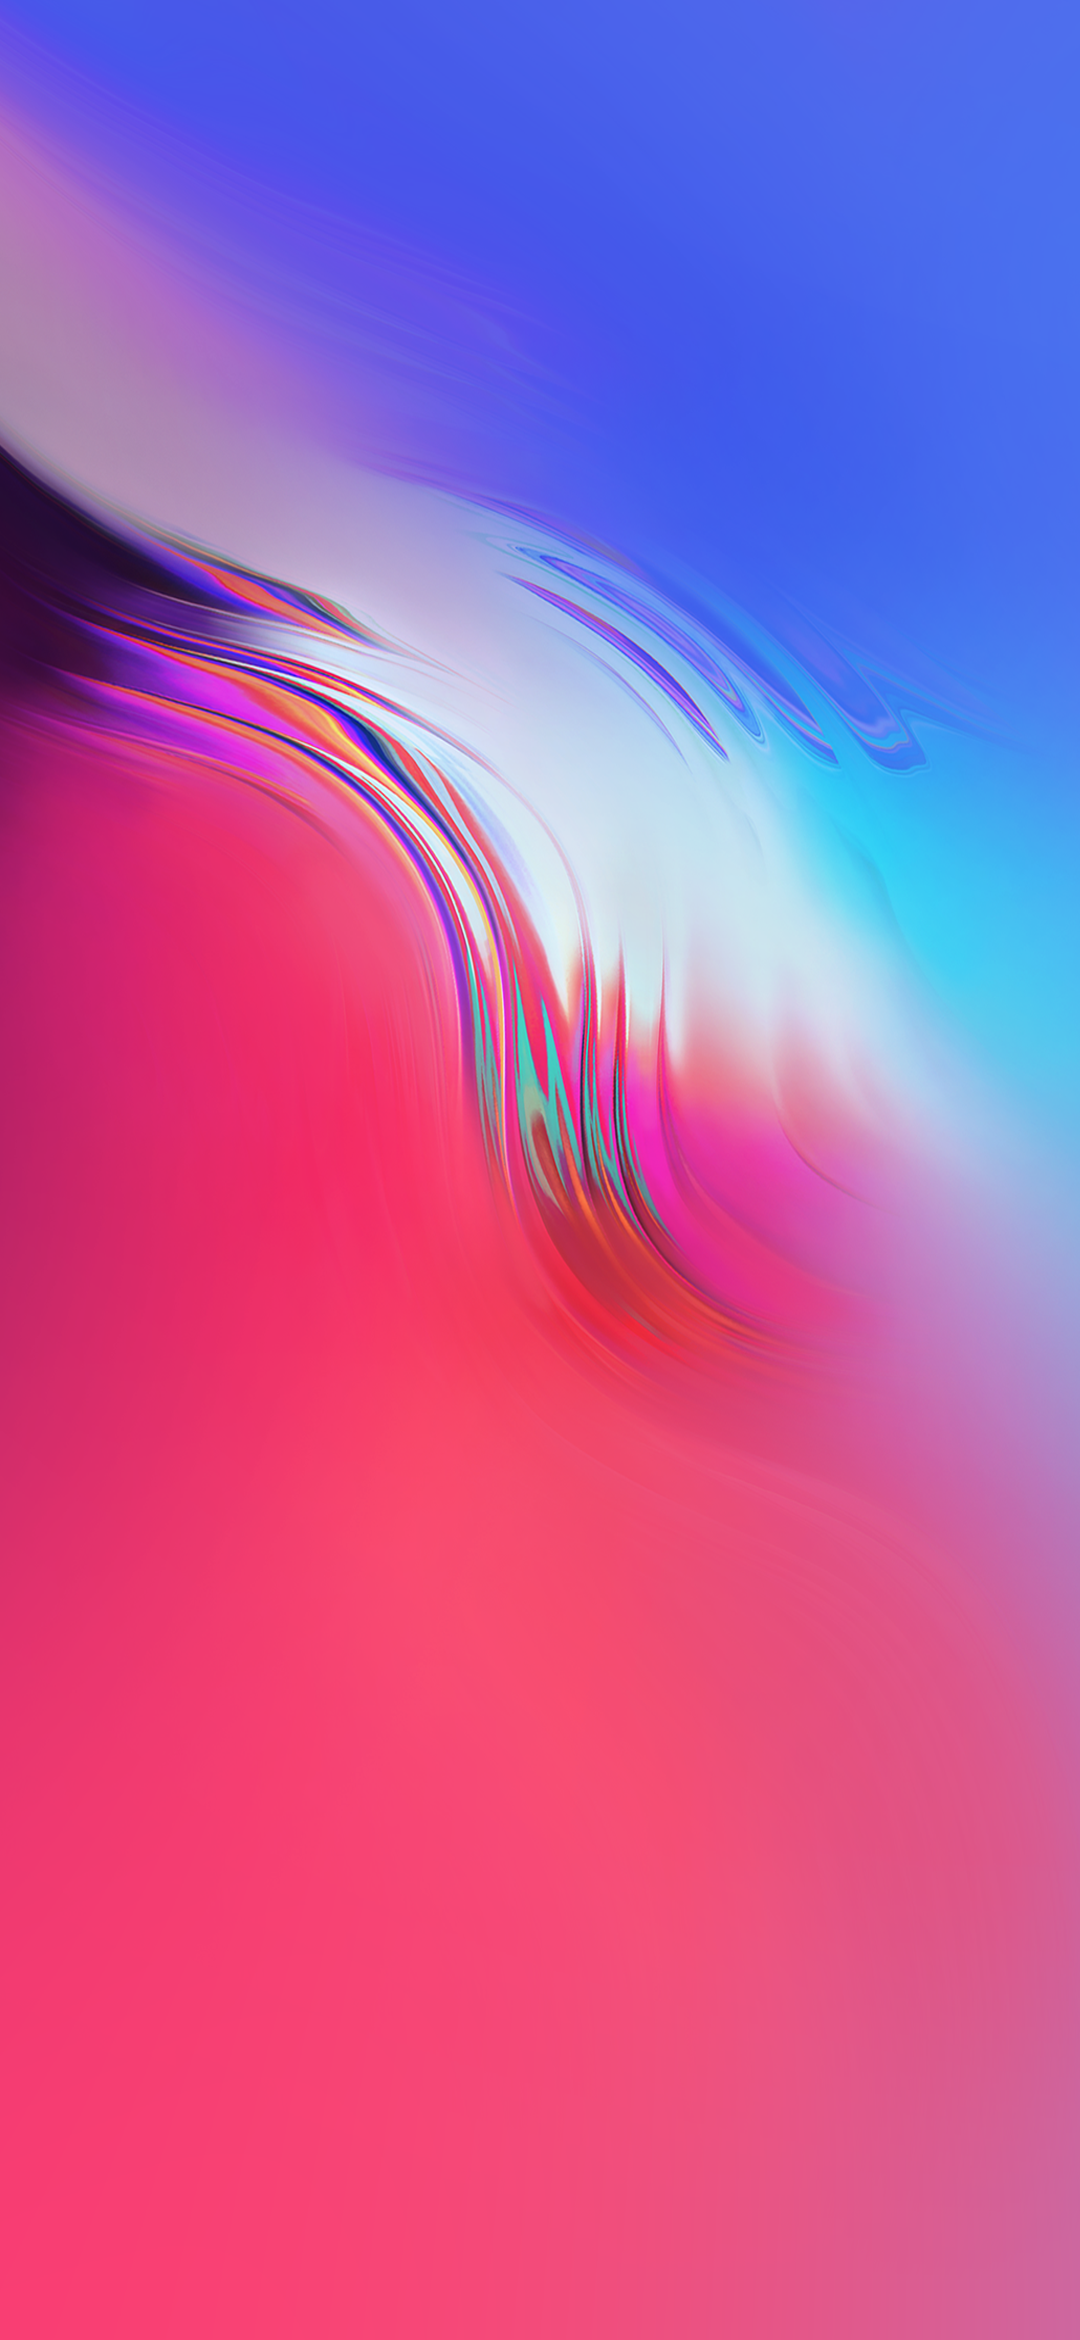 S10 5g Wallpapers Wallpaper Cave